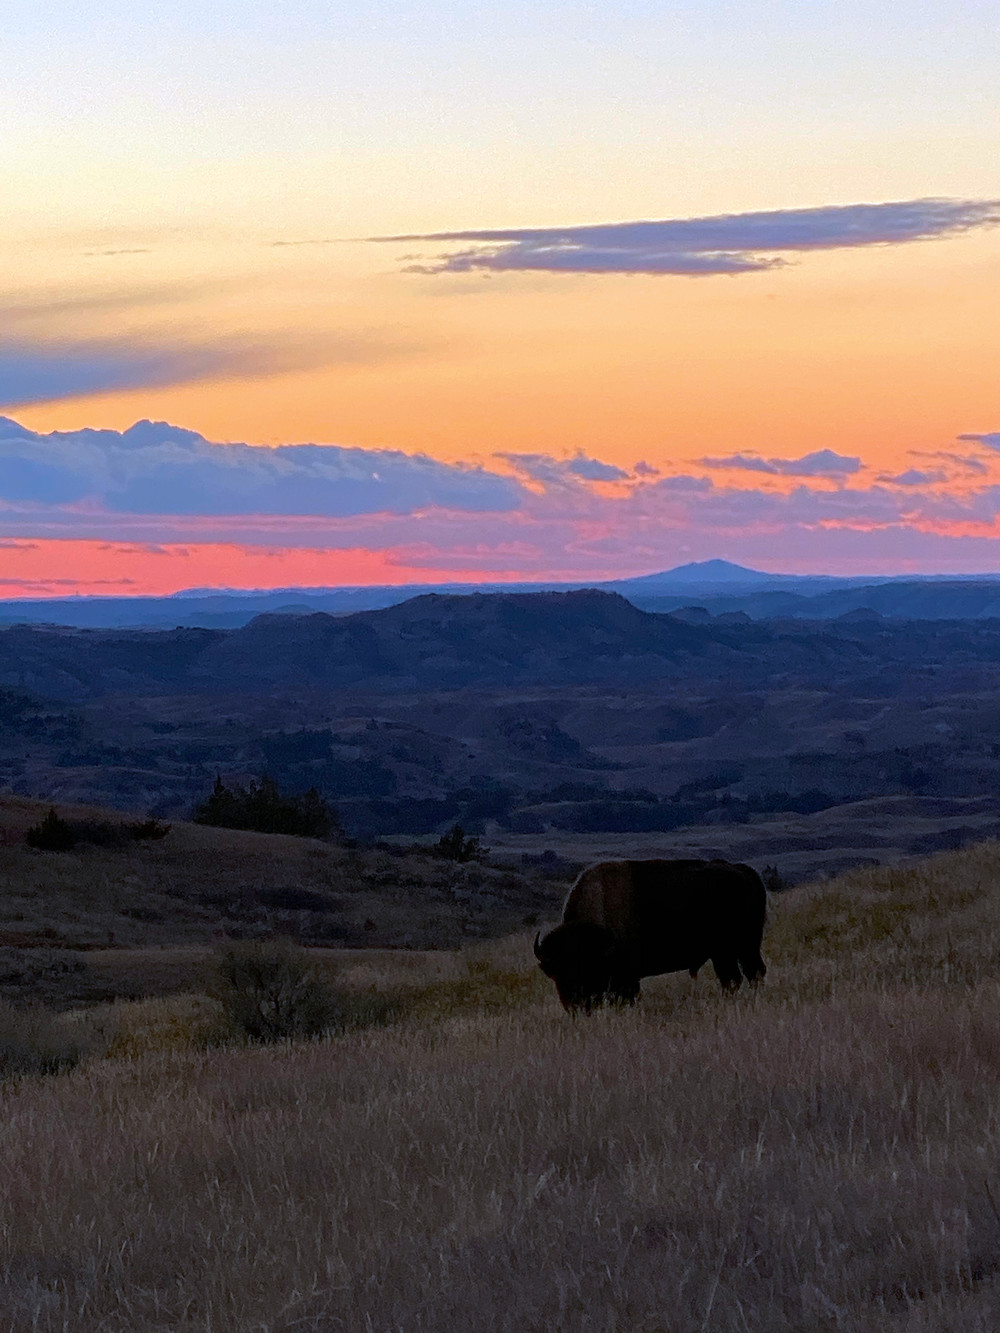 a watercolor sunset over a Bison in Theodore Roosevelt National Park features vivid pinks, purples, and oranges over the plains